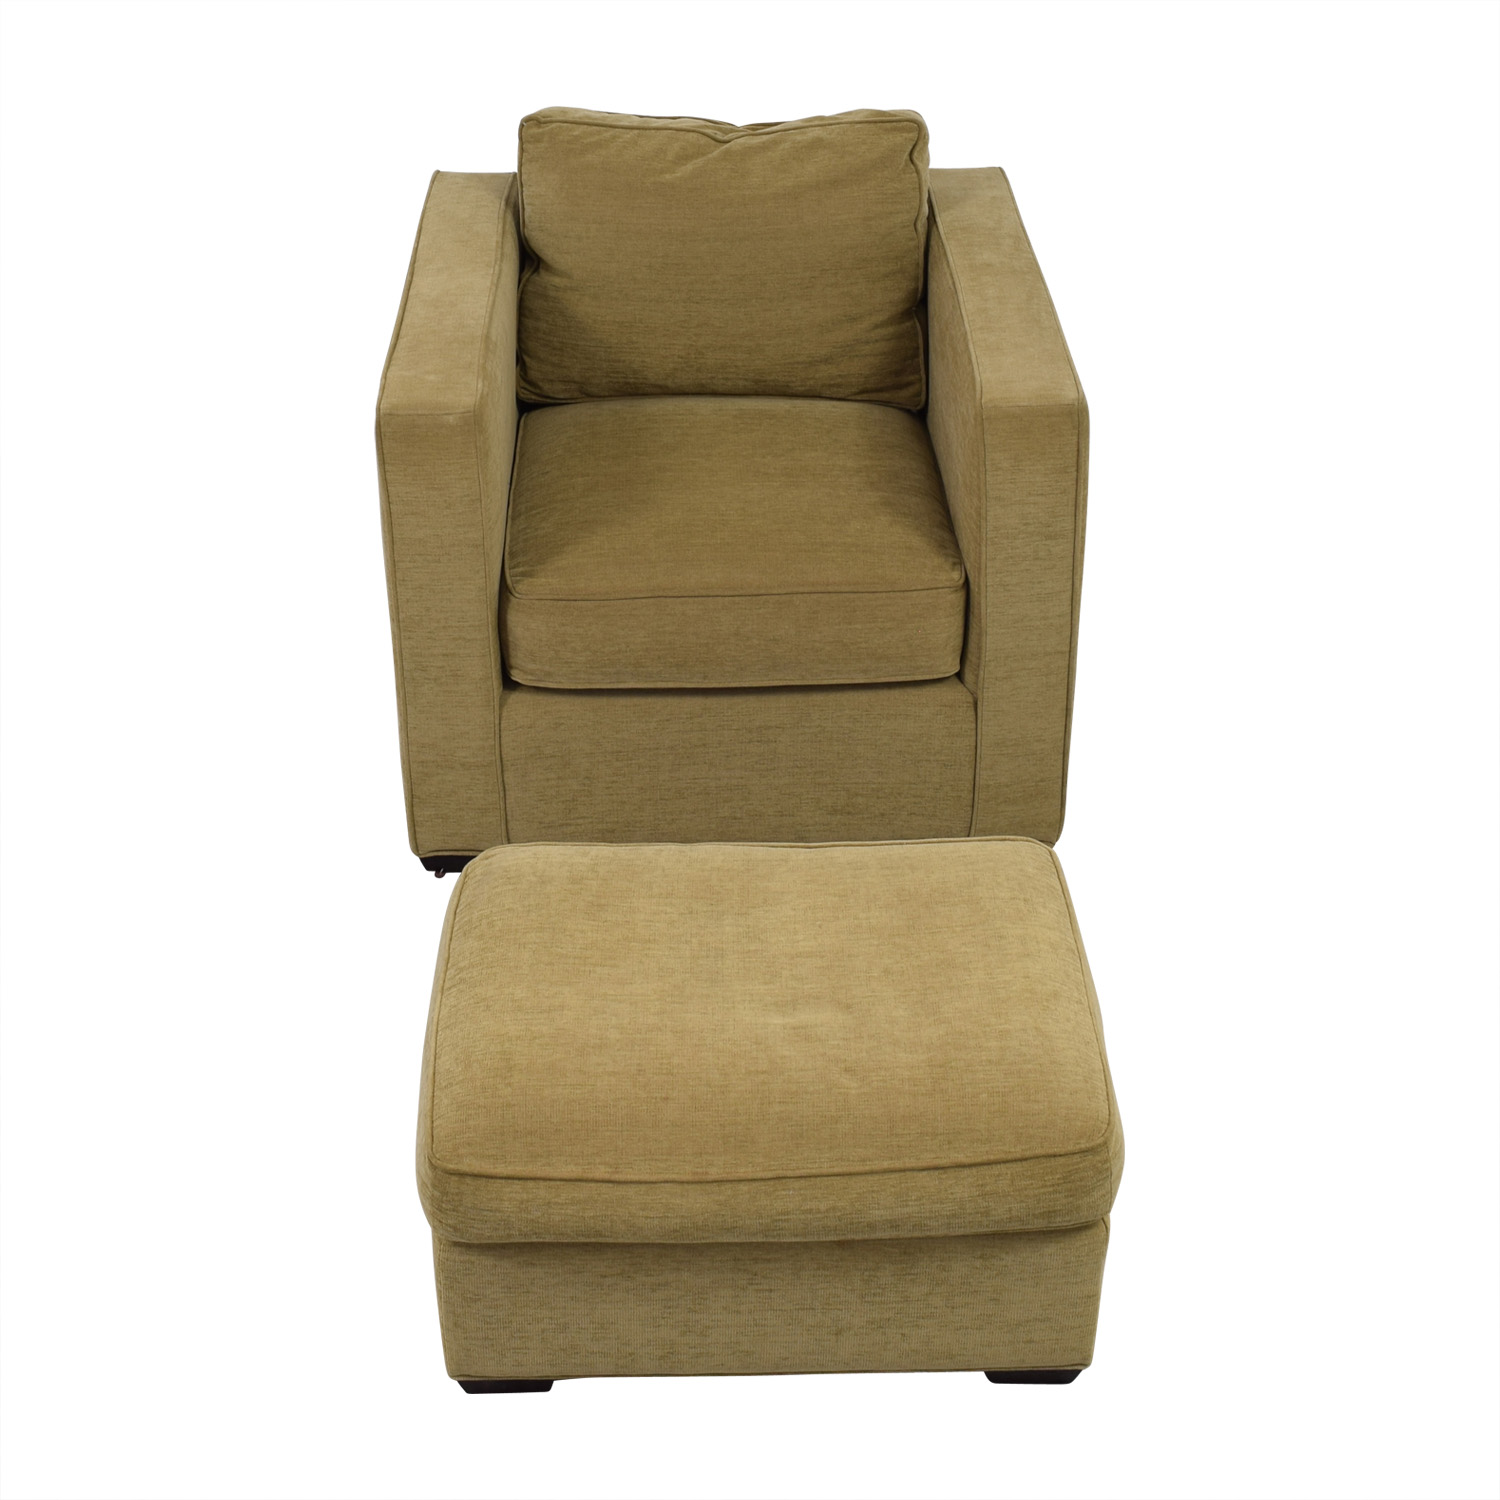 Room & Board Room & Board Fabric Chair and Ottoman Chairs